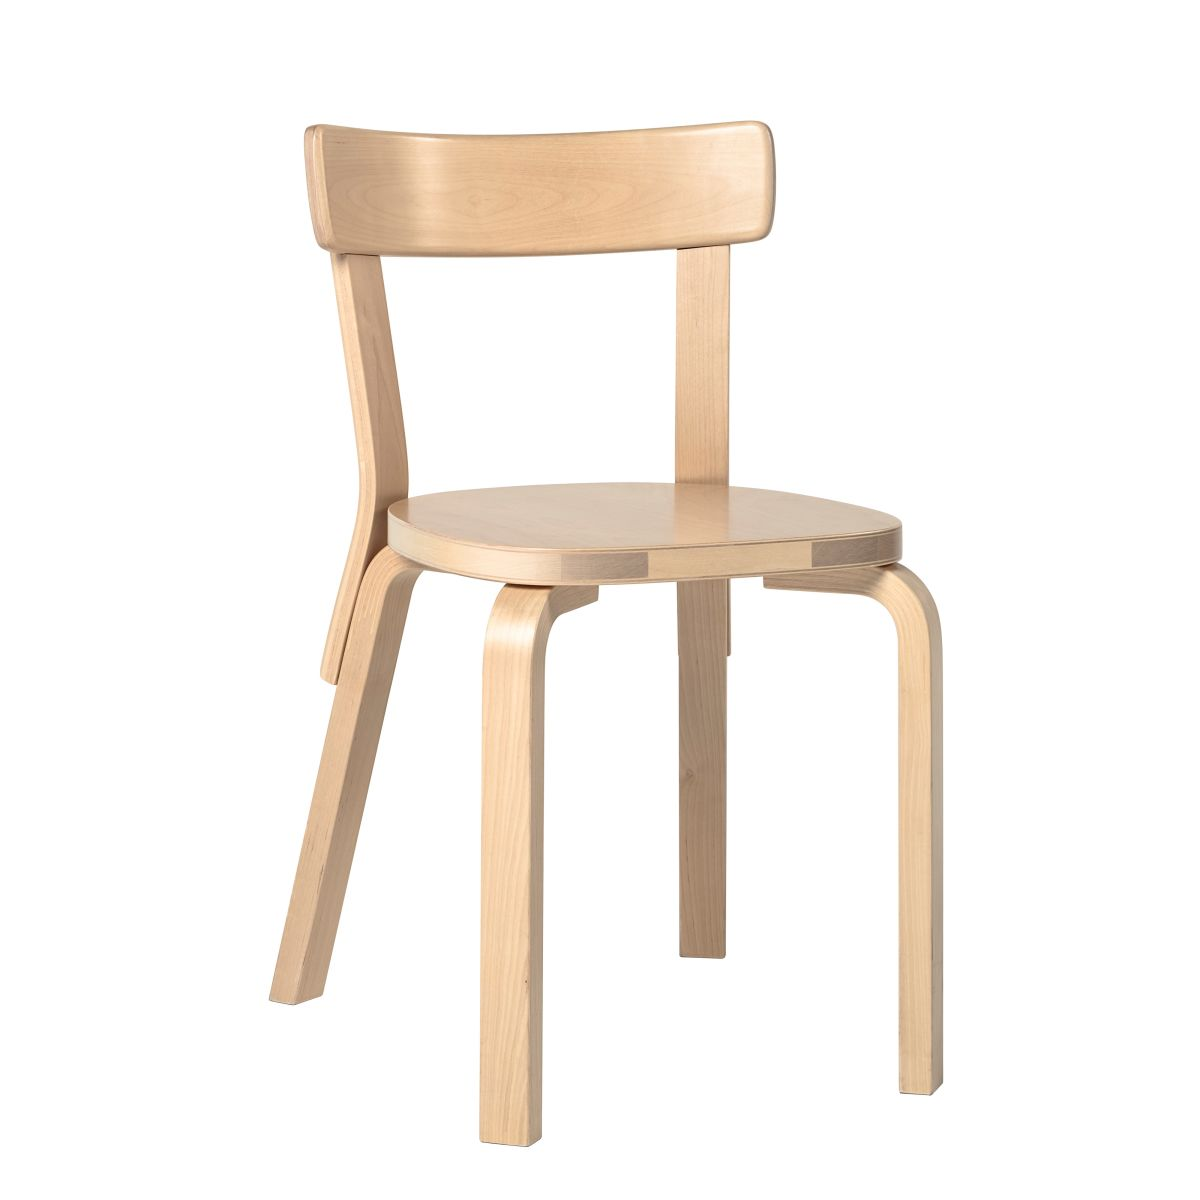 Chair-69-Birch